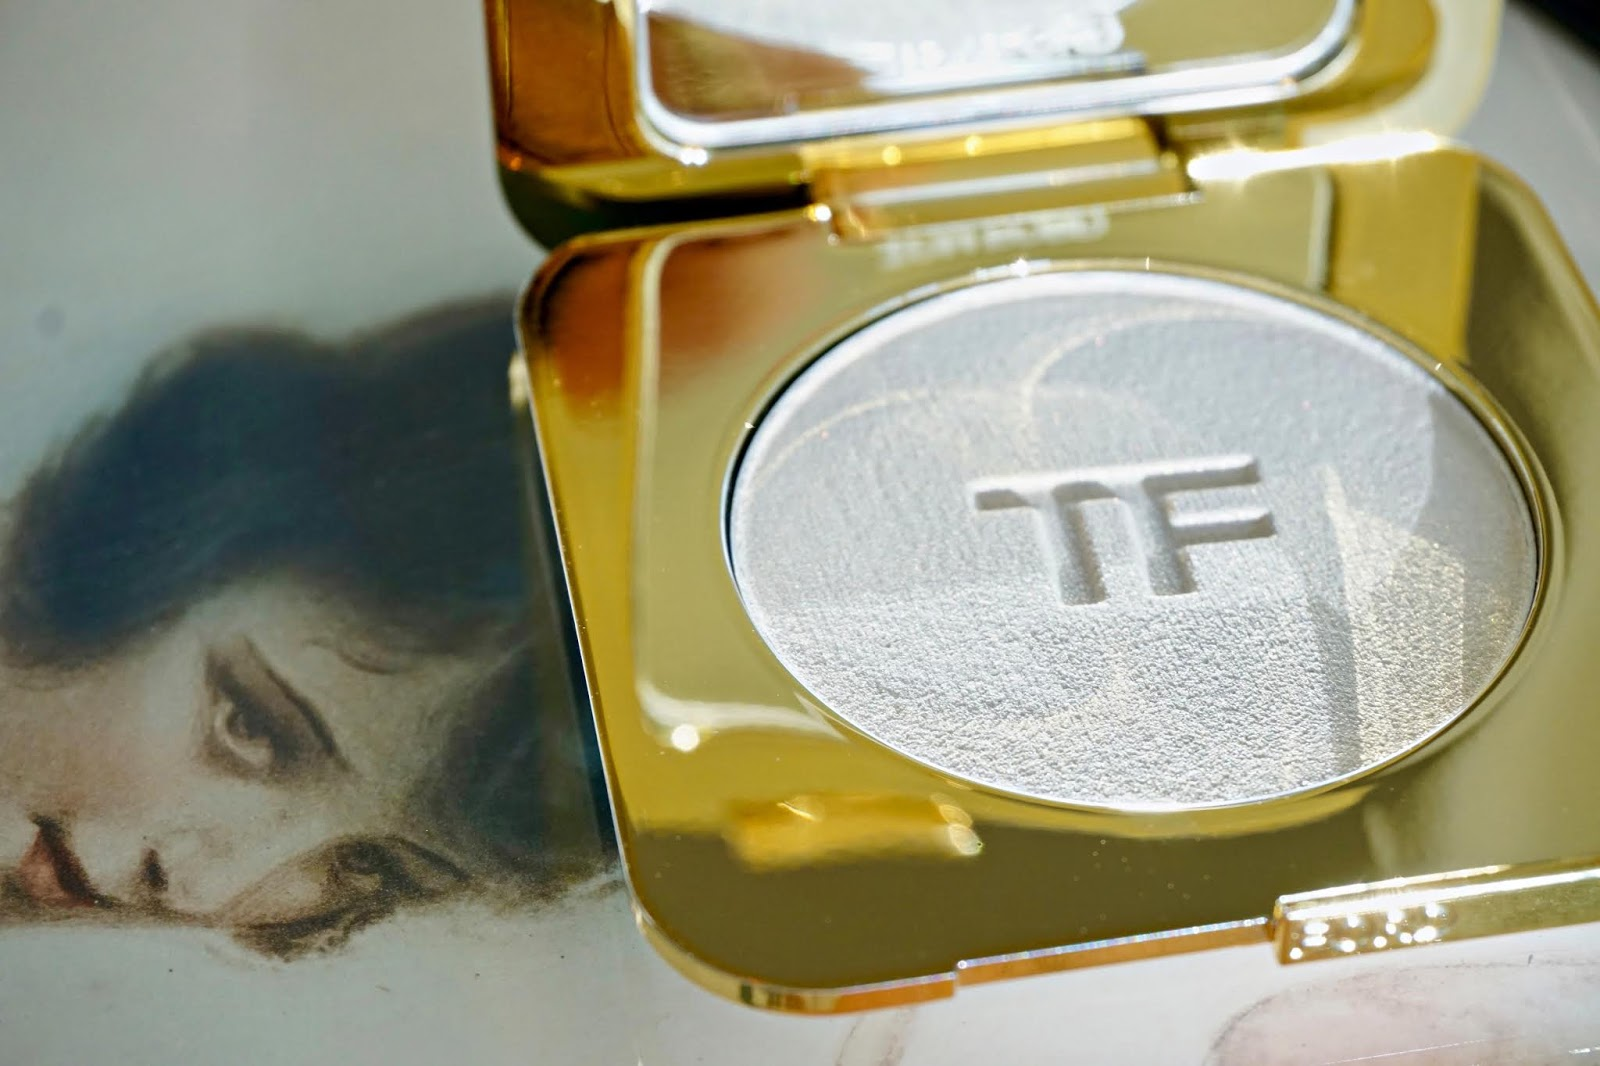 tom ford gilt glow powder